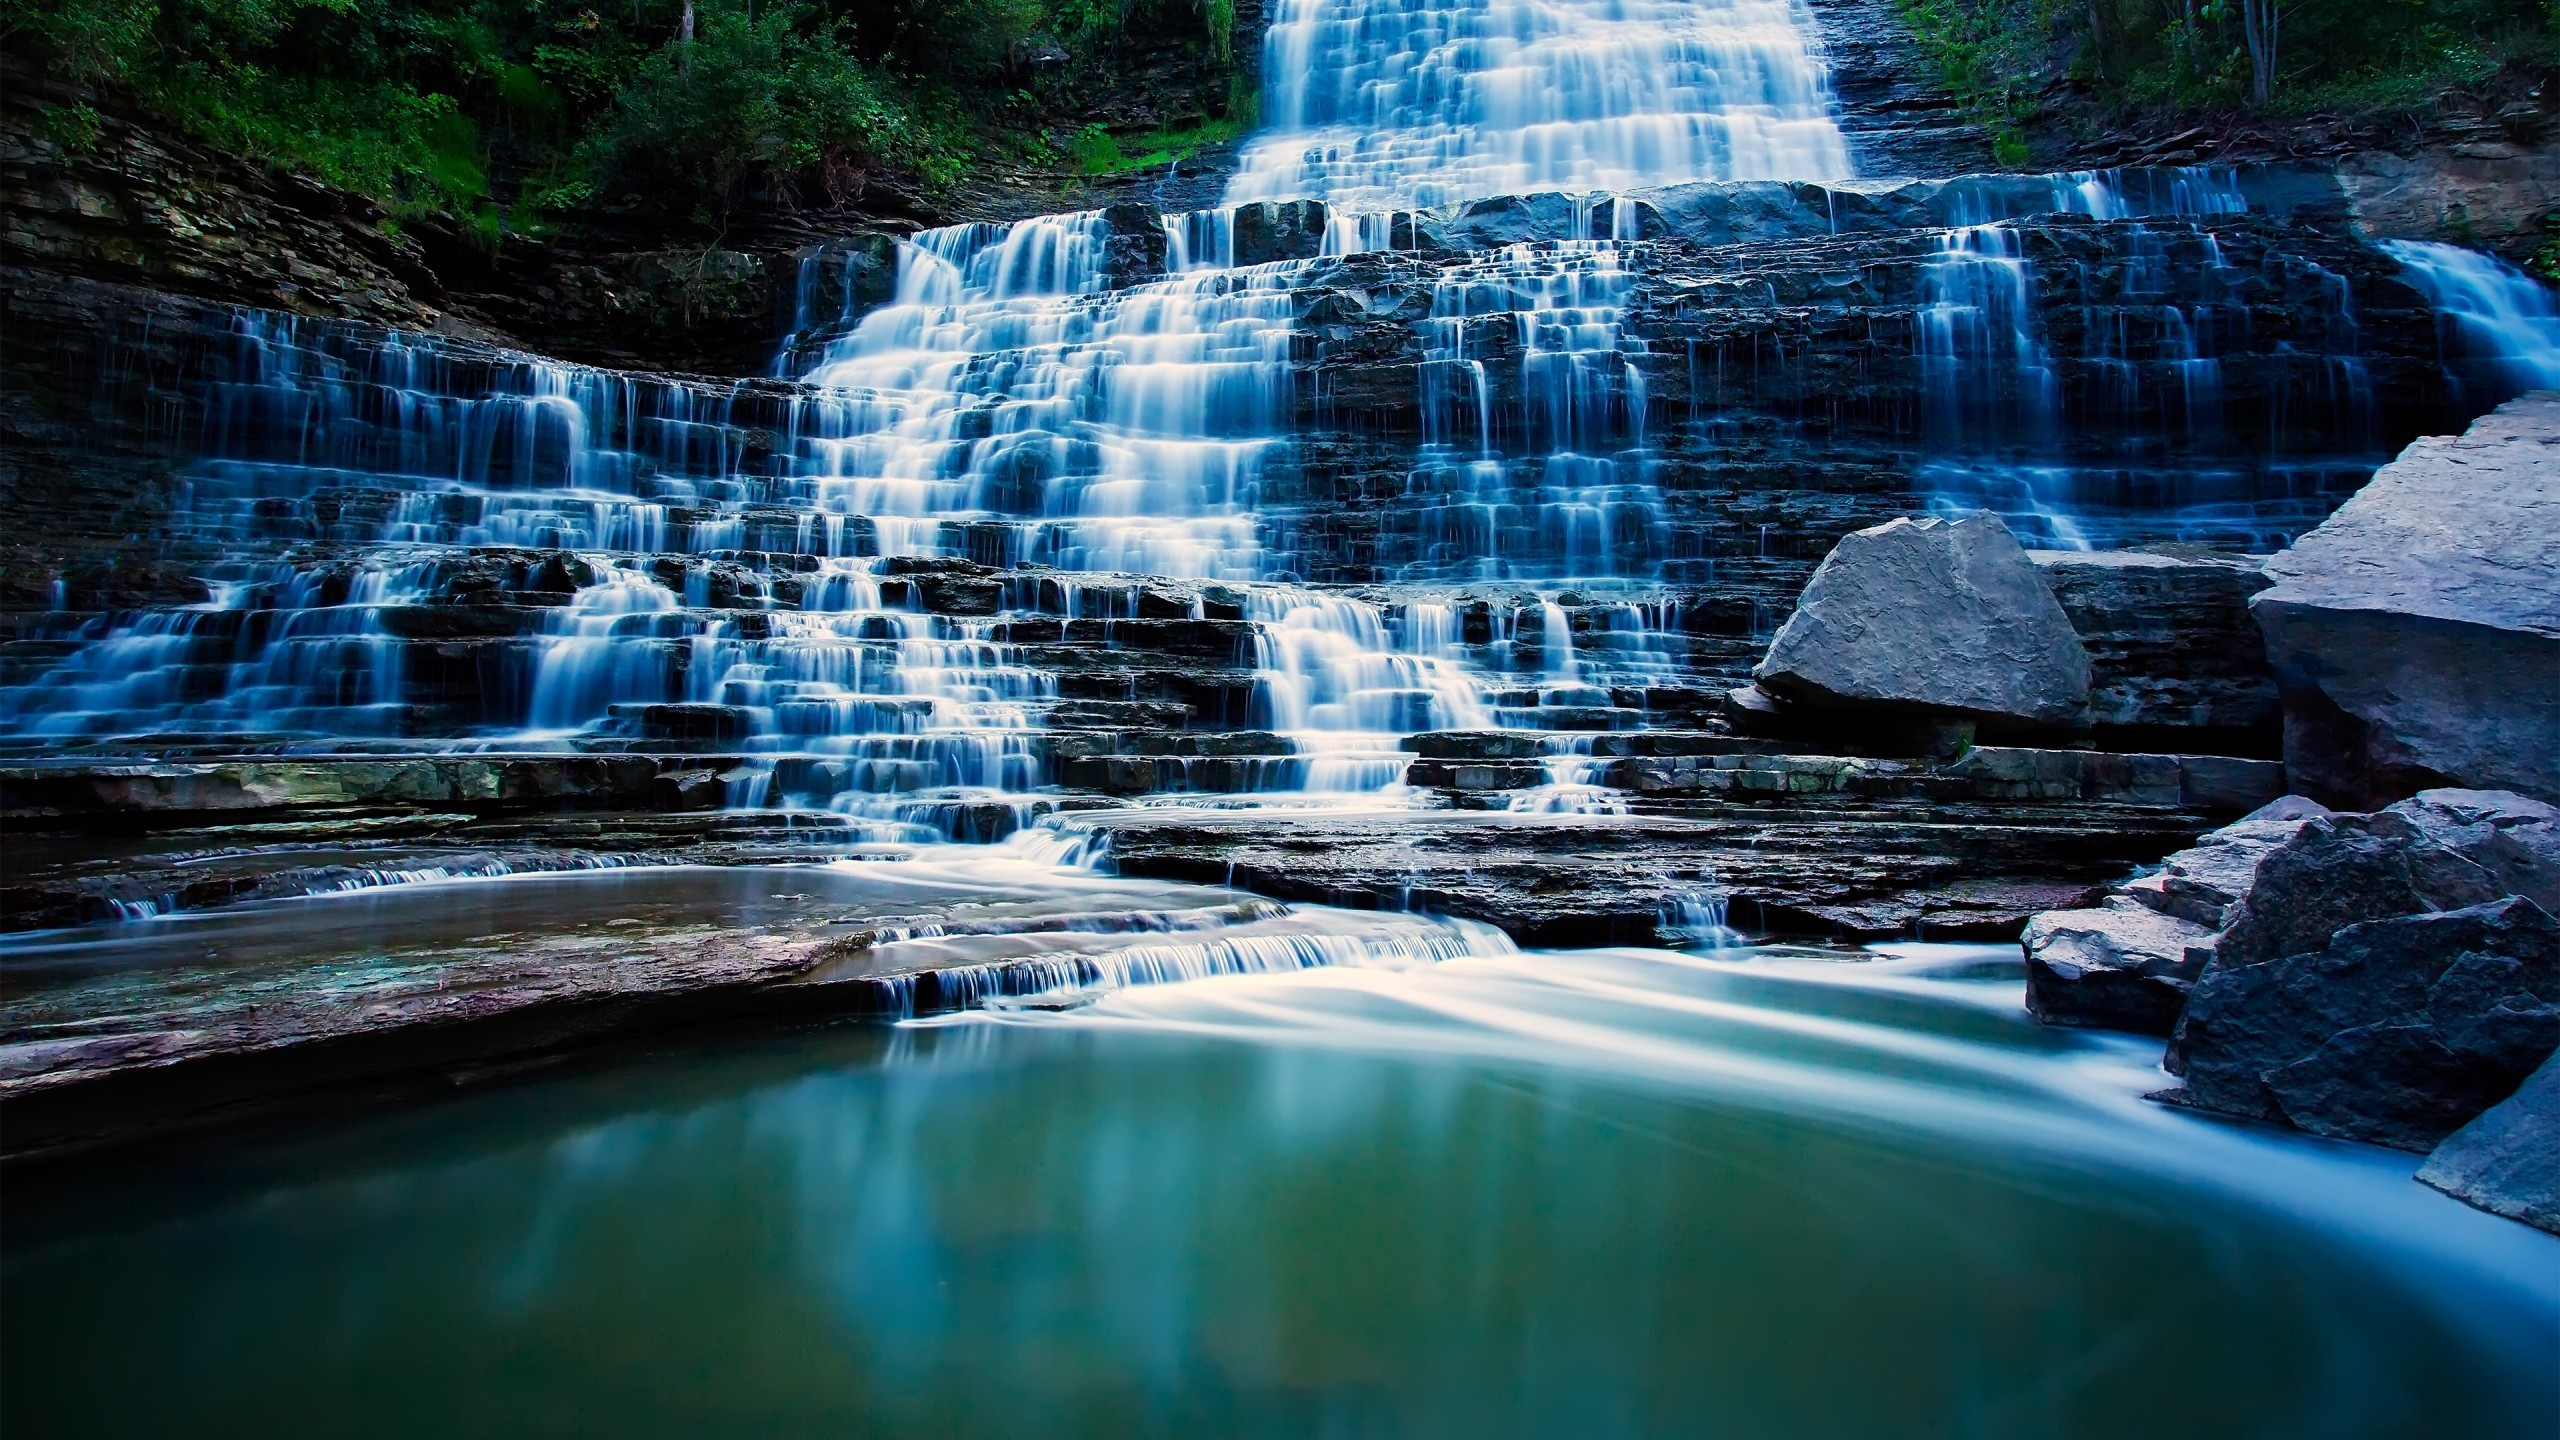 Albion Falls Ontario Canada for 2560x1440 HDTV resolution